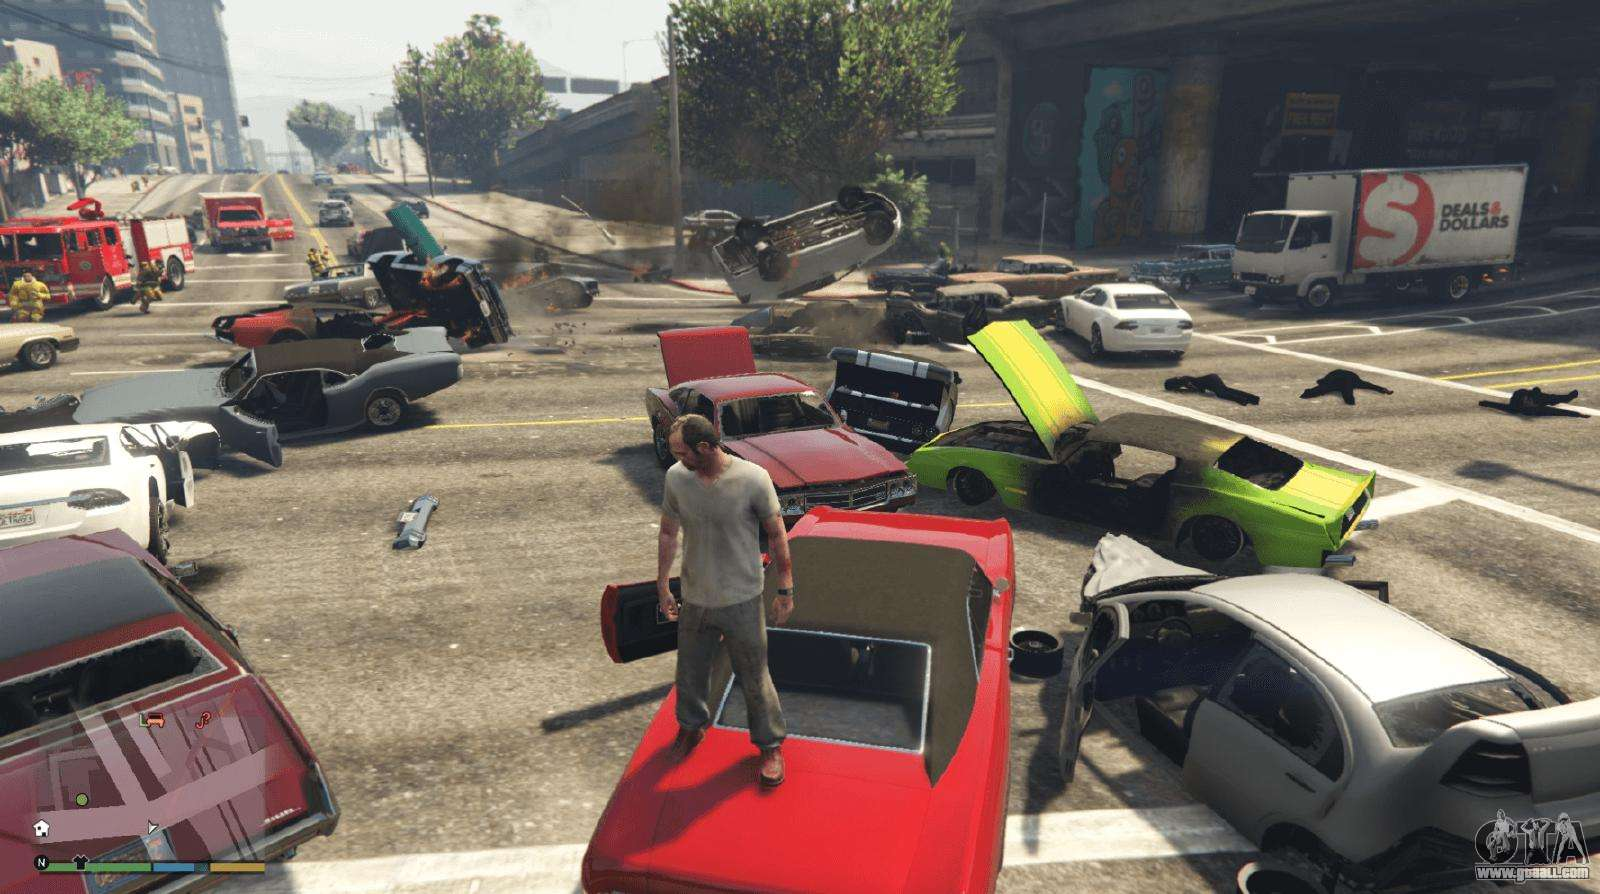 GTA 5 mods - download and install mods in GTA 5 is very simple